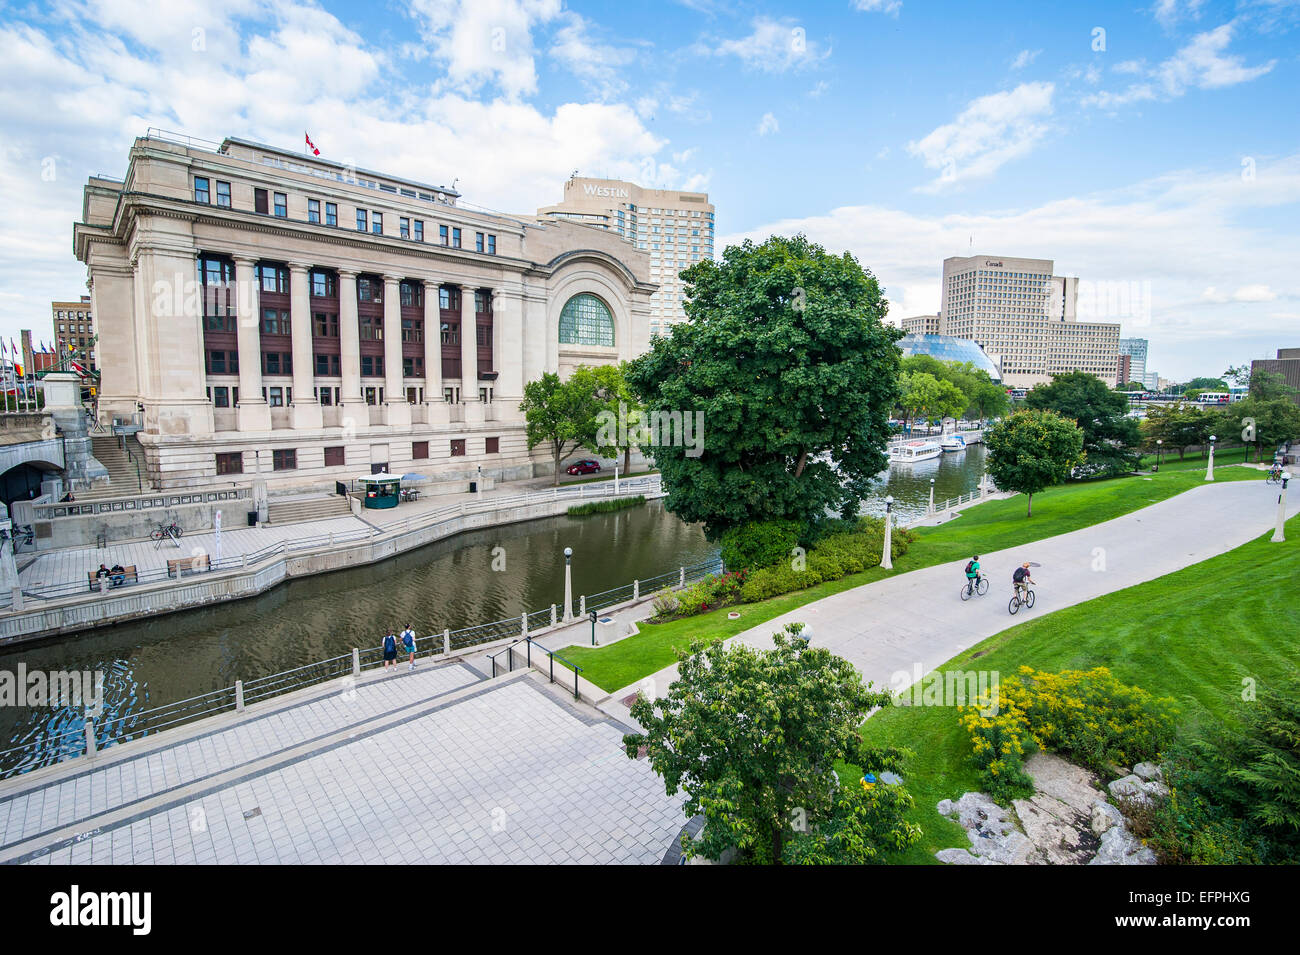 Government Conference Center on the Rideau Canal, Ottawa, Ontario, Canada, North America - Stock Image